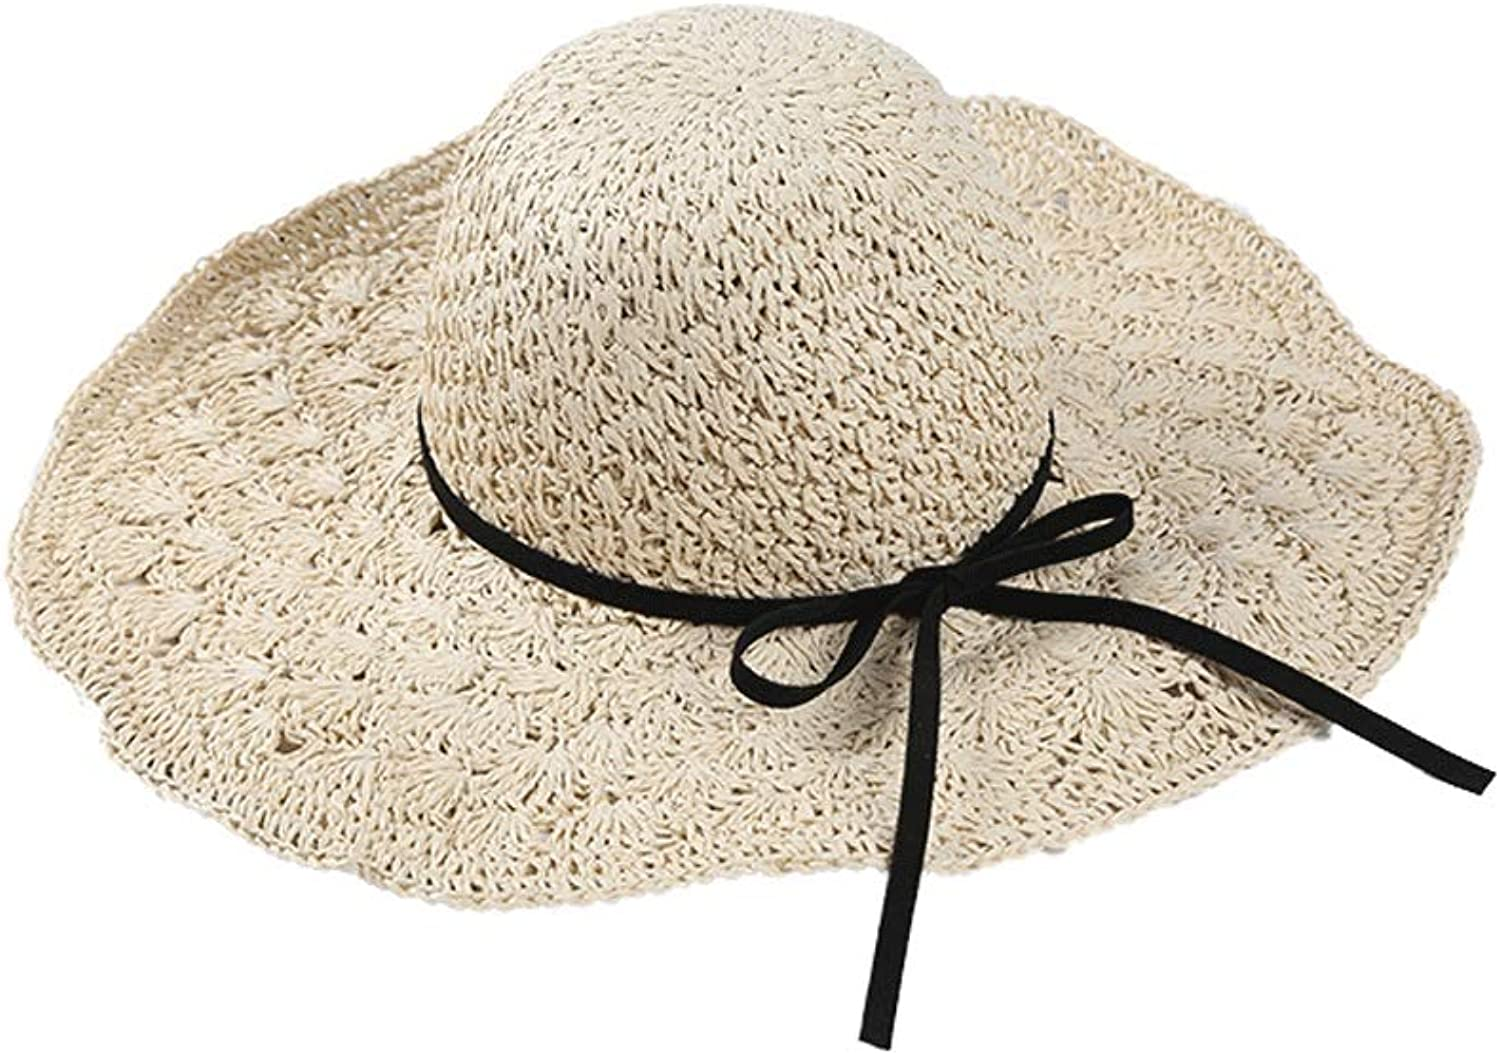 YD HatSummer Lady Straw Sun Hat Casual Wild Big Breathable Beach Cap Foldable HandKnitted (5 color Choice)    (color   D)